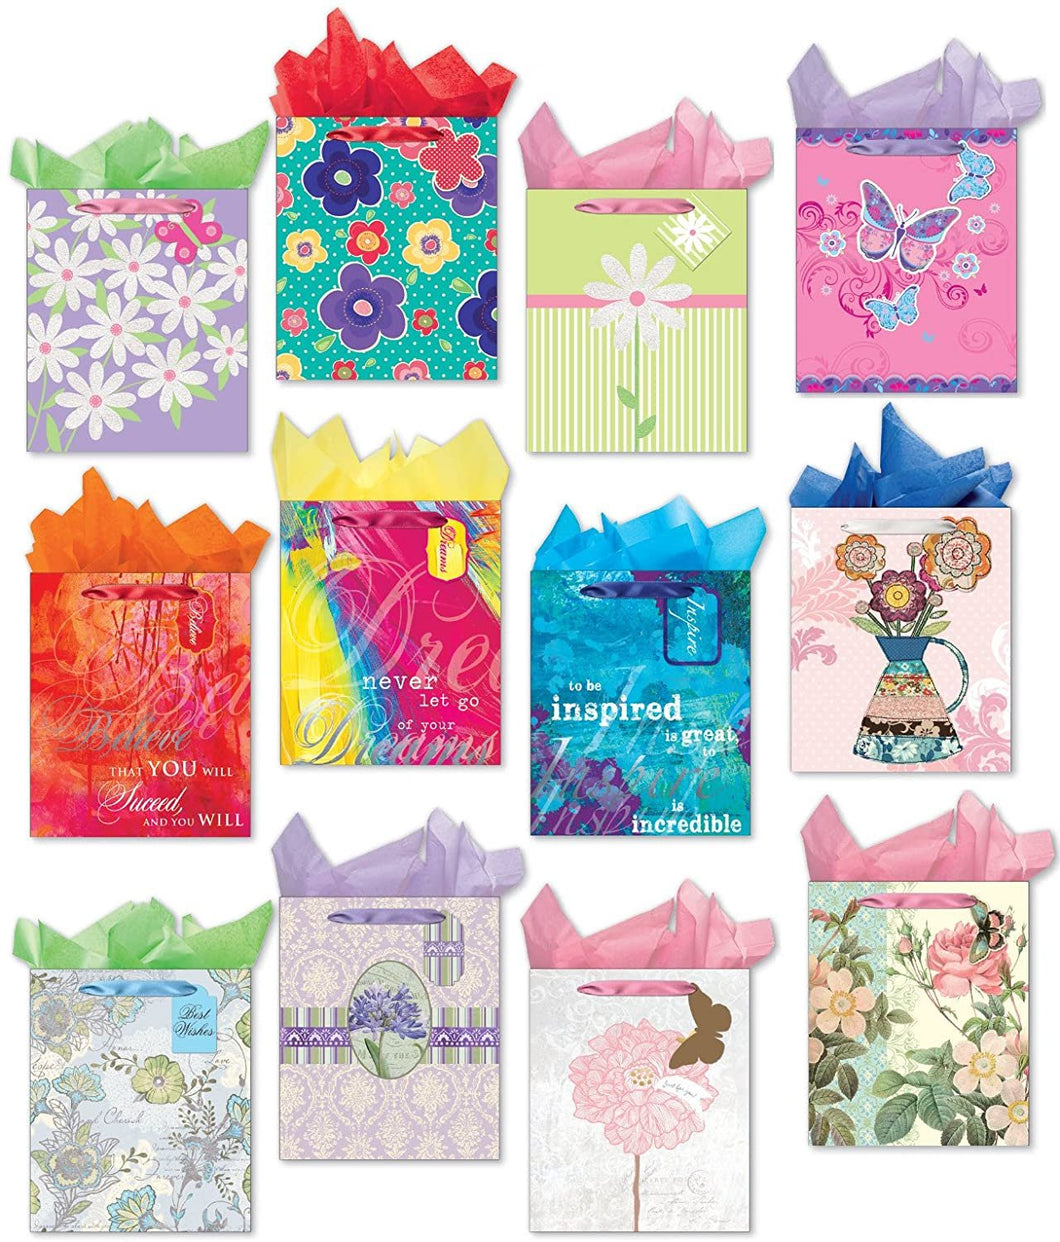 All Occasion Gift Bag Set of 12 Large Gift Bags Embellished with Glitter and Foil Including Packing Tissue Paper and Gift Bag Tags